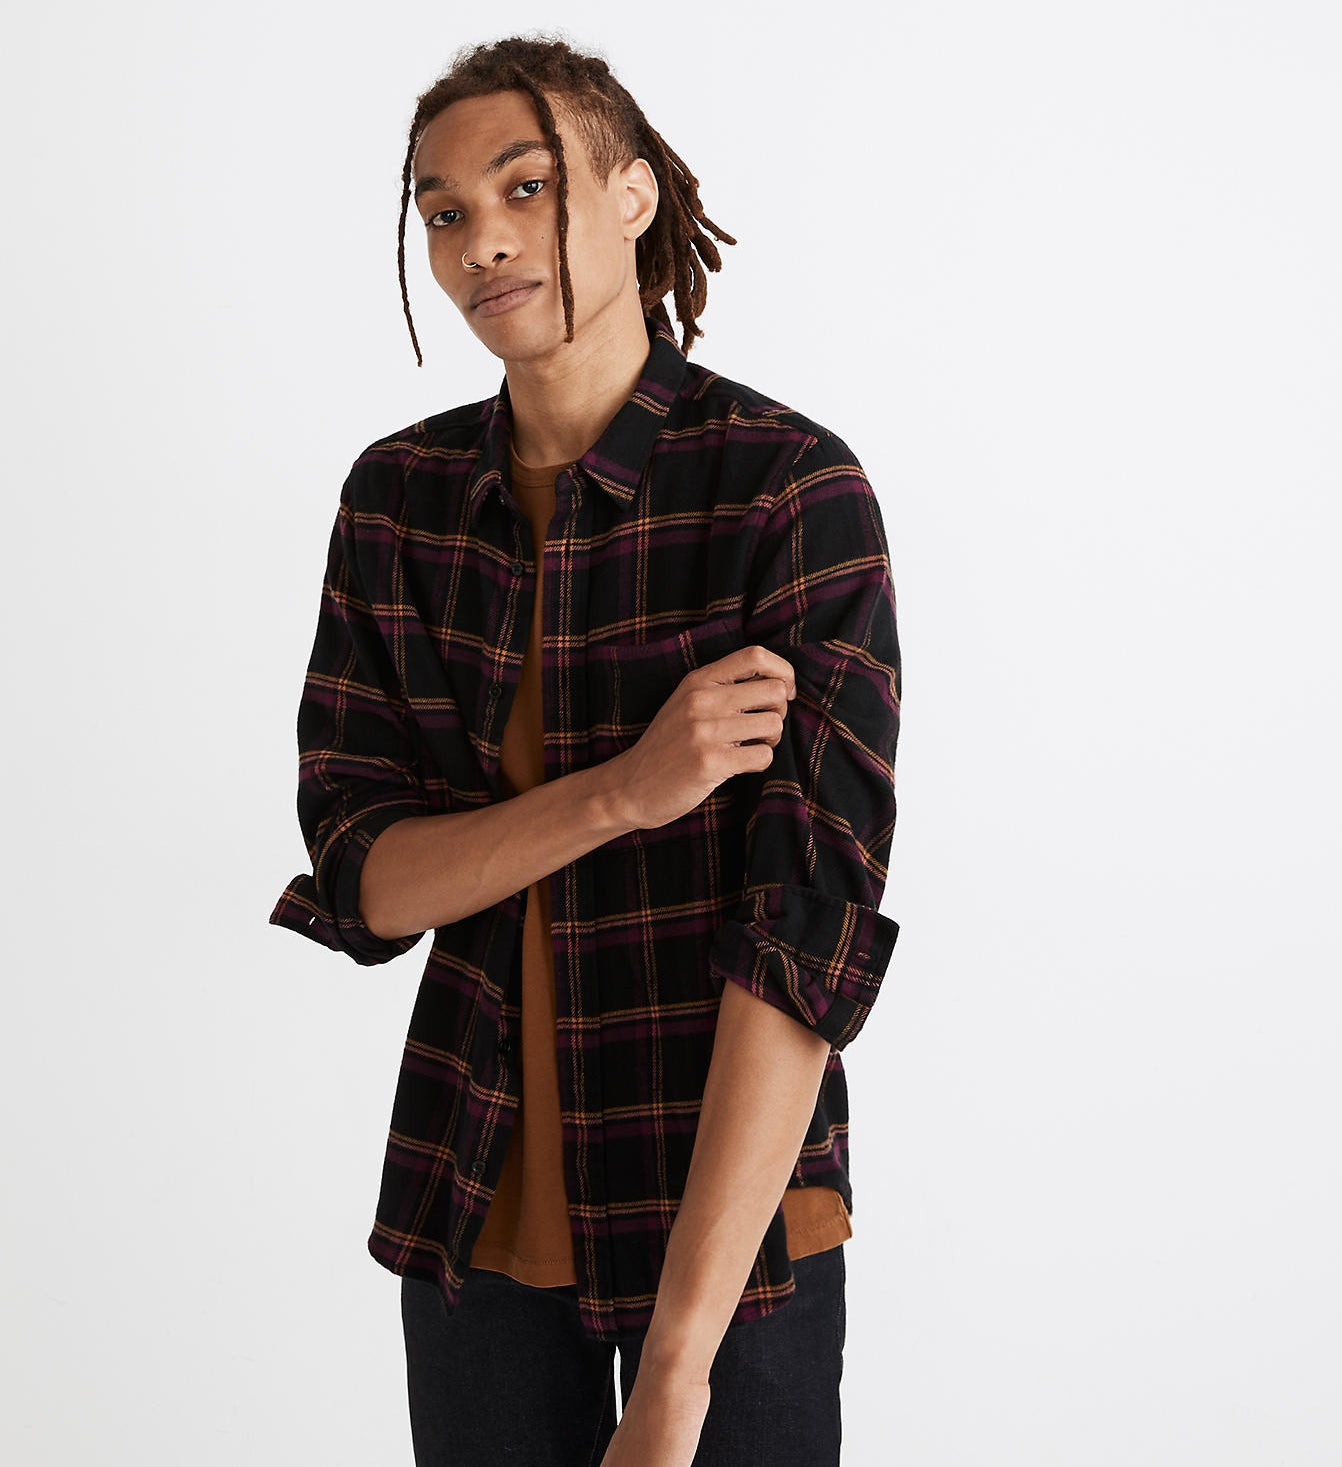 Model wearing Madewell double-brushed flannel perfect shirt in peretz plaid